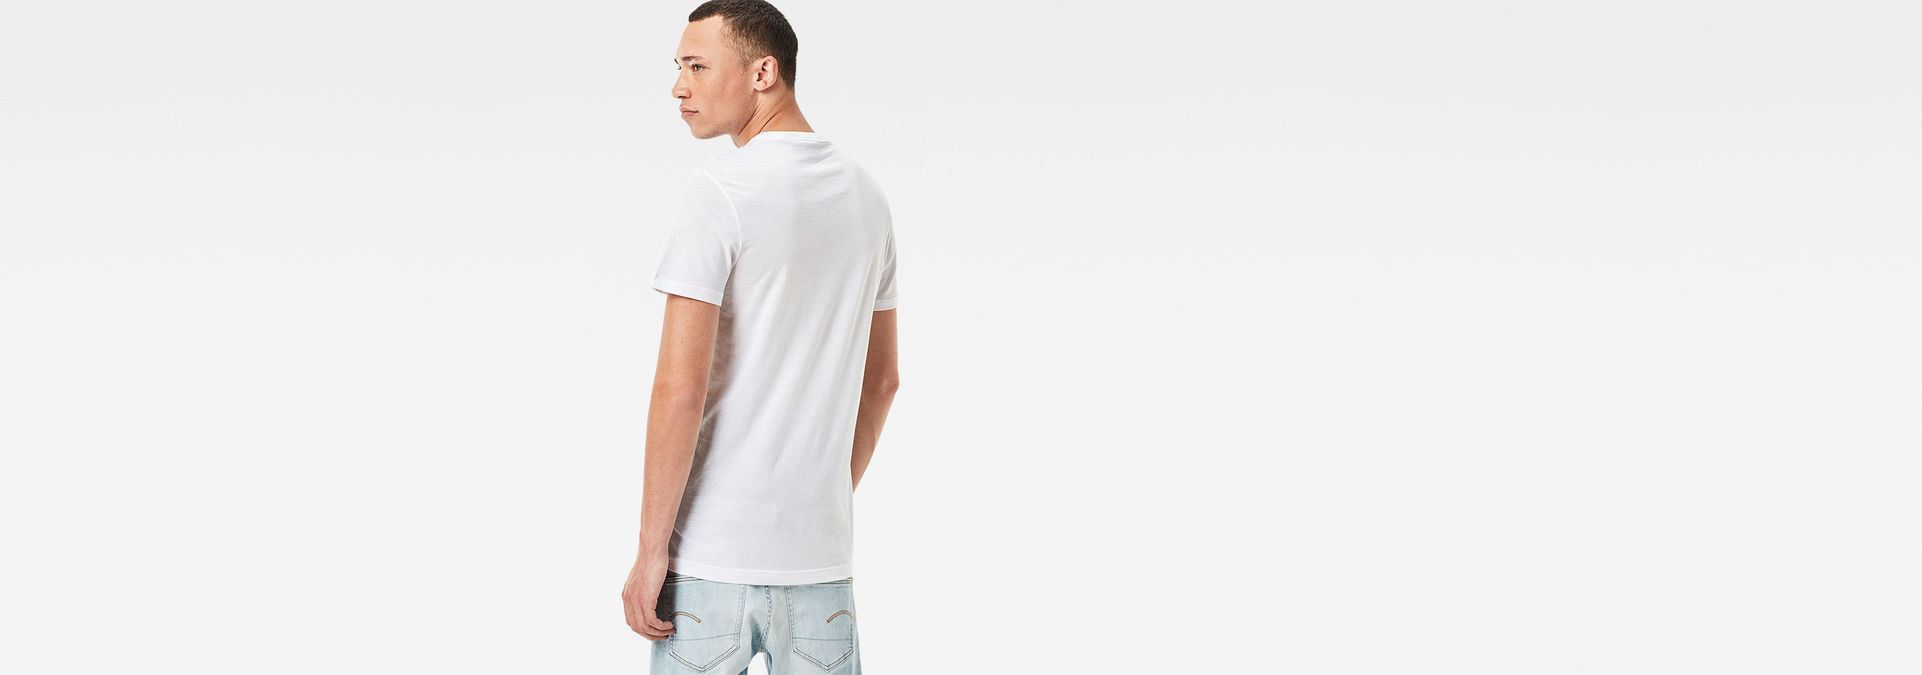 585a110b31a ... G-Star RAW® Daefon T-Shirt White model back ...